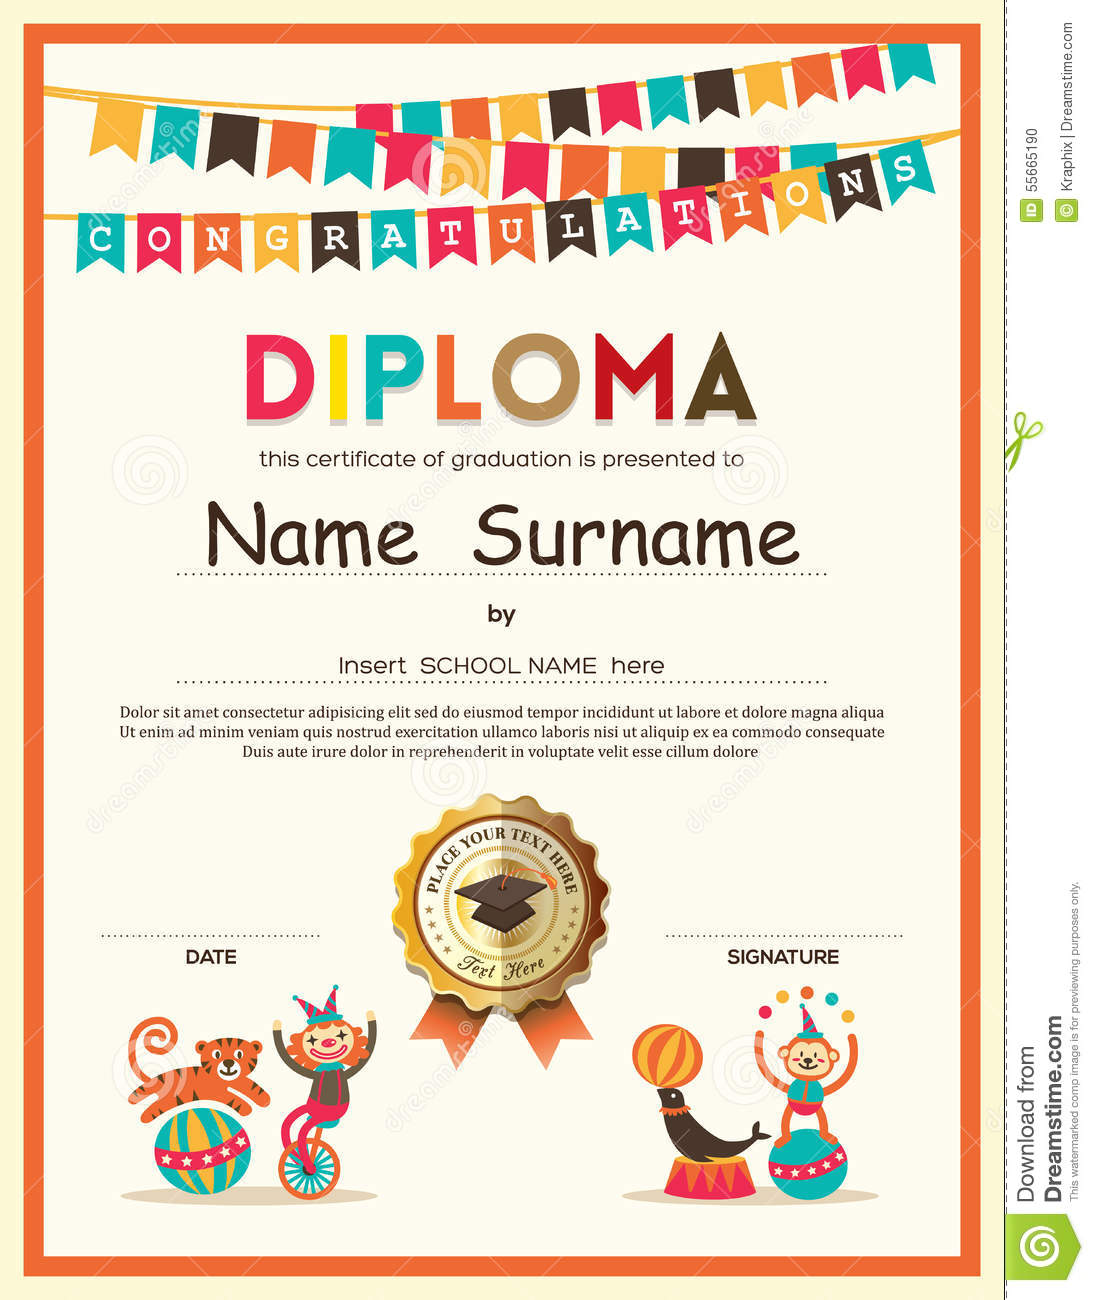 high school diploma certificate fancy design templates - preschool elementary school kids diploma certificate